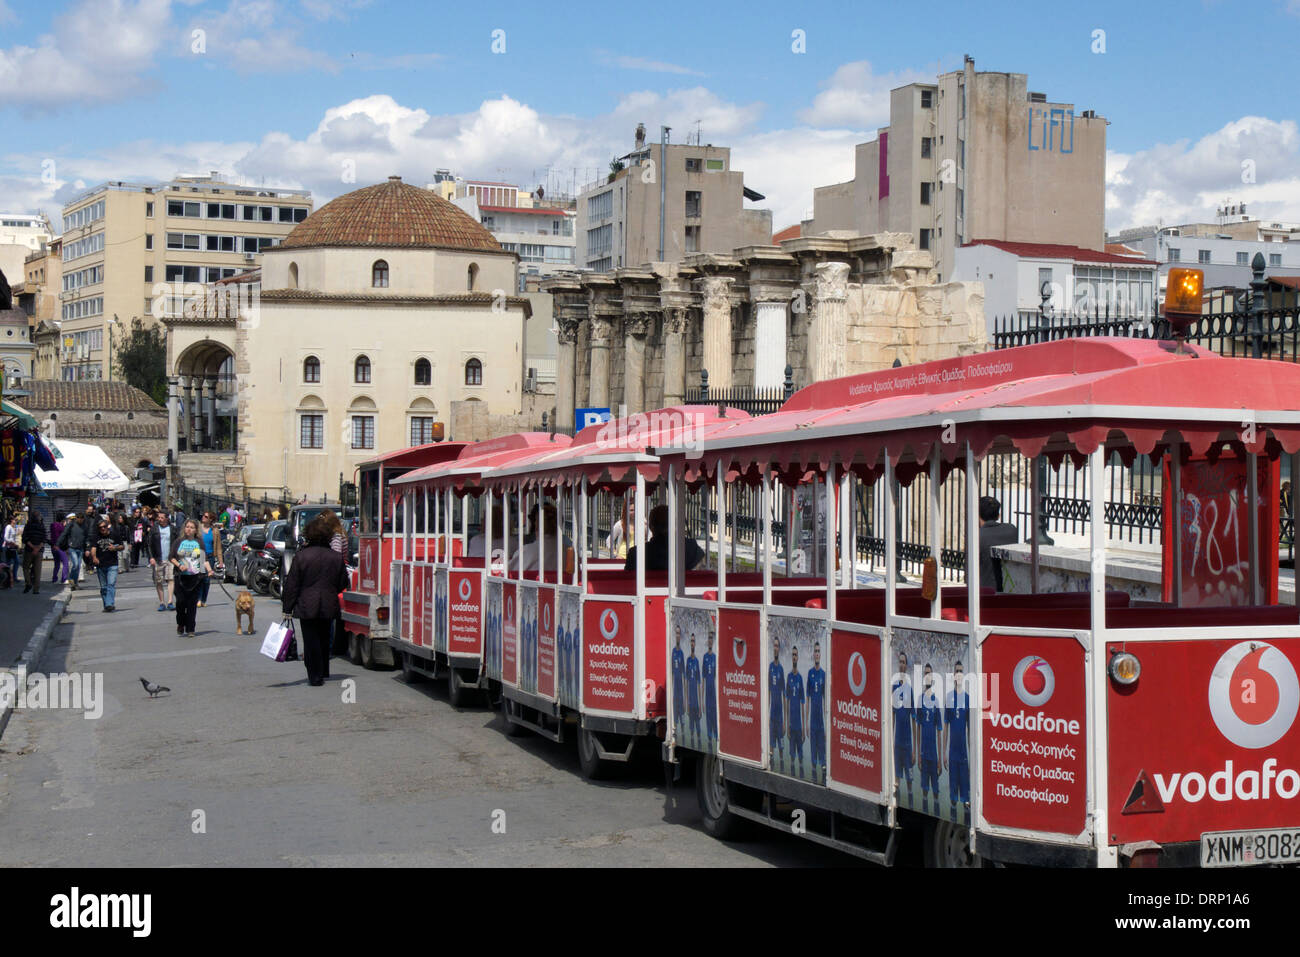 greece attica athens tourist mini train in front of the archaeological site of hadrian's library - Stock Image